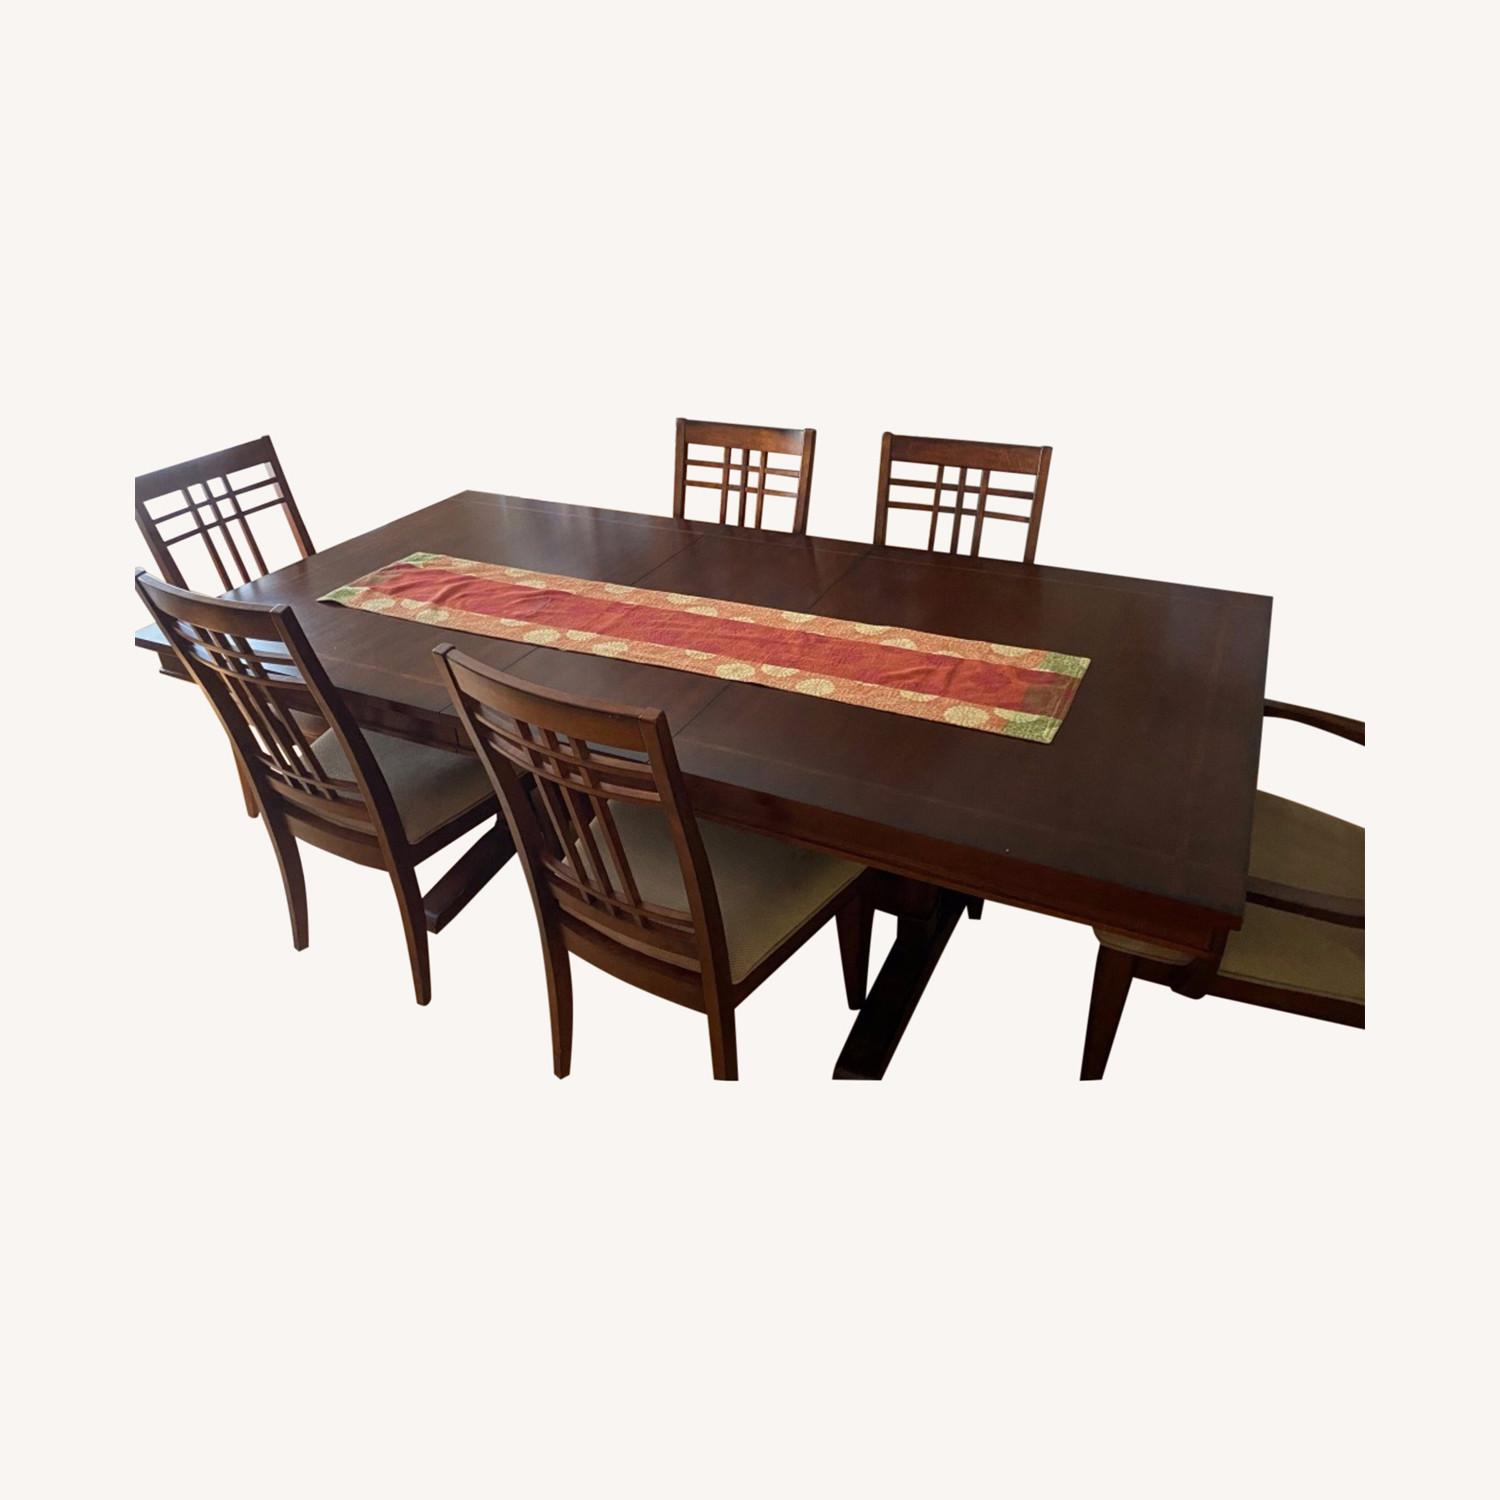 Macy's Dinner Table and Chairs - image-0